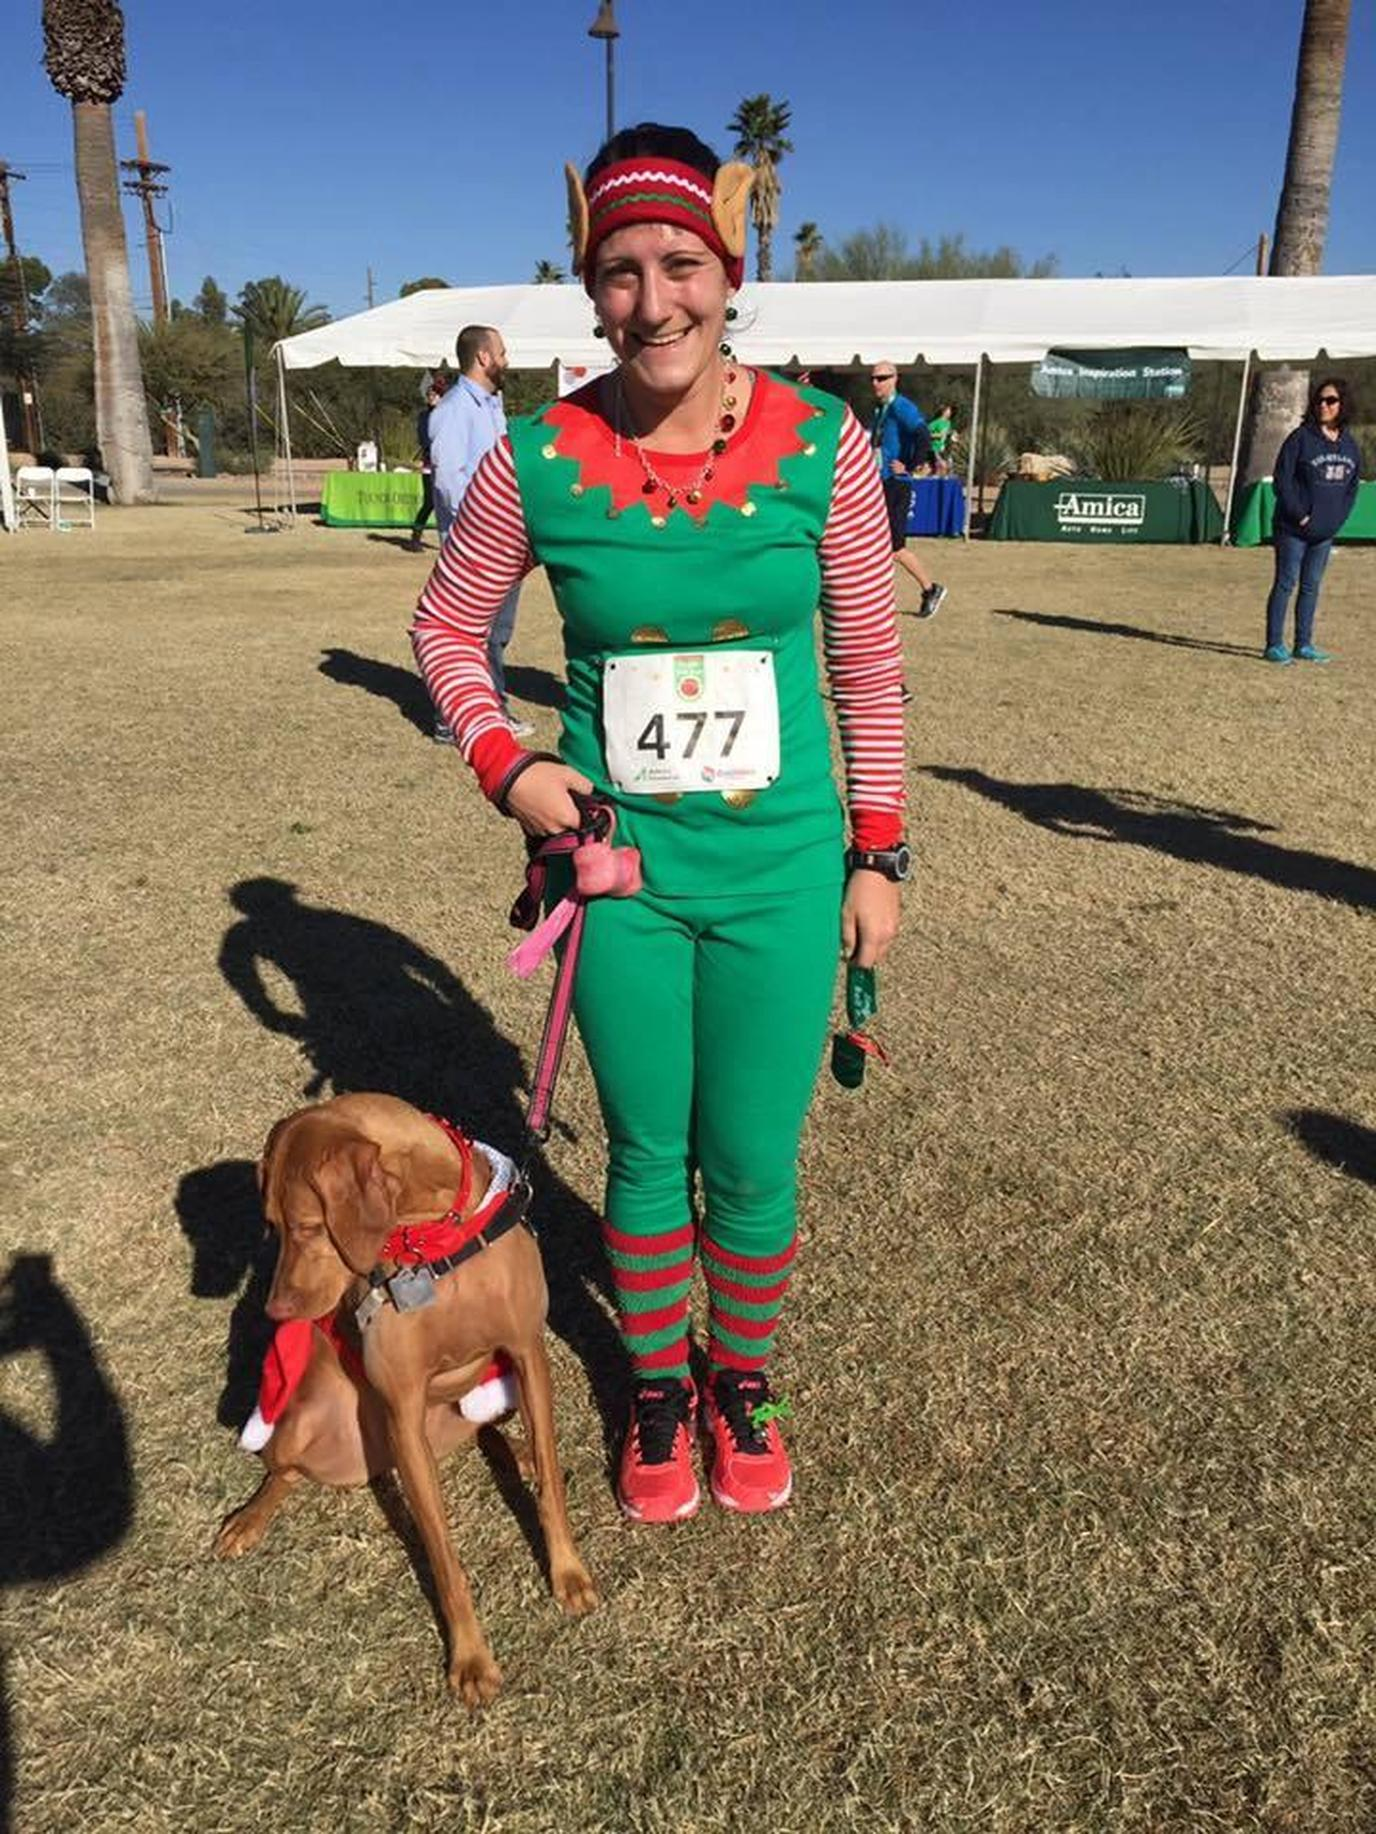 A Woman in an Elf Costume Gets Ready for a Pet-Friendly Christmas Race in Tuscon.